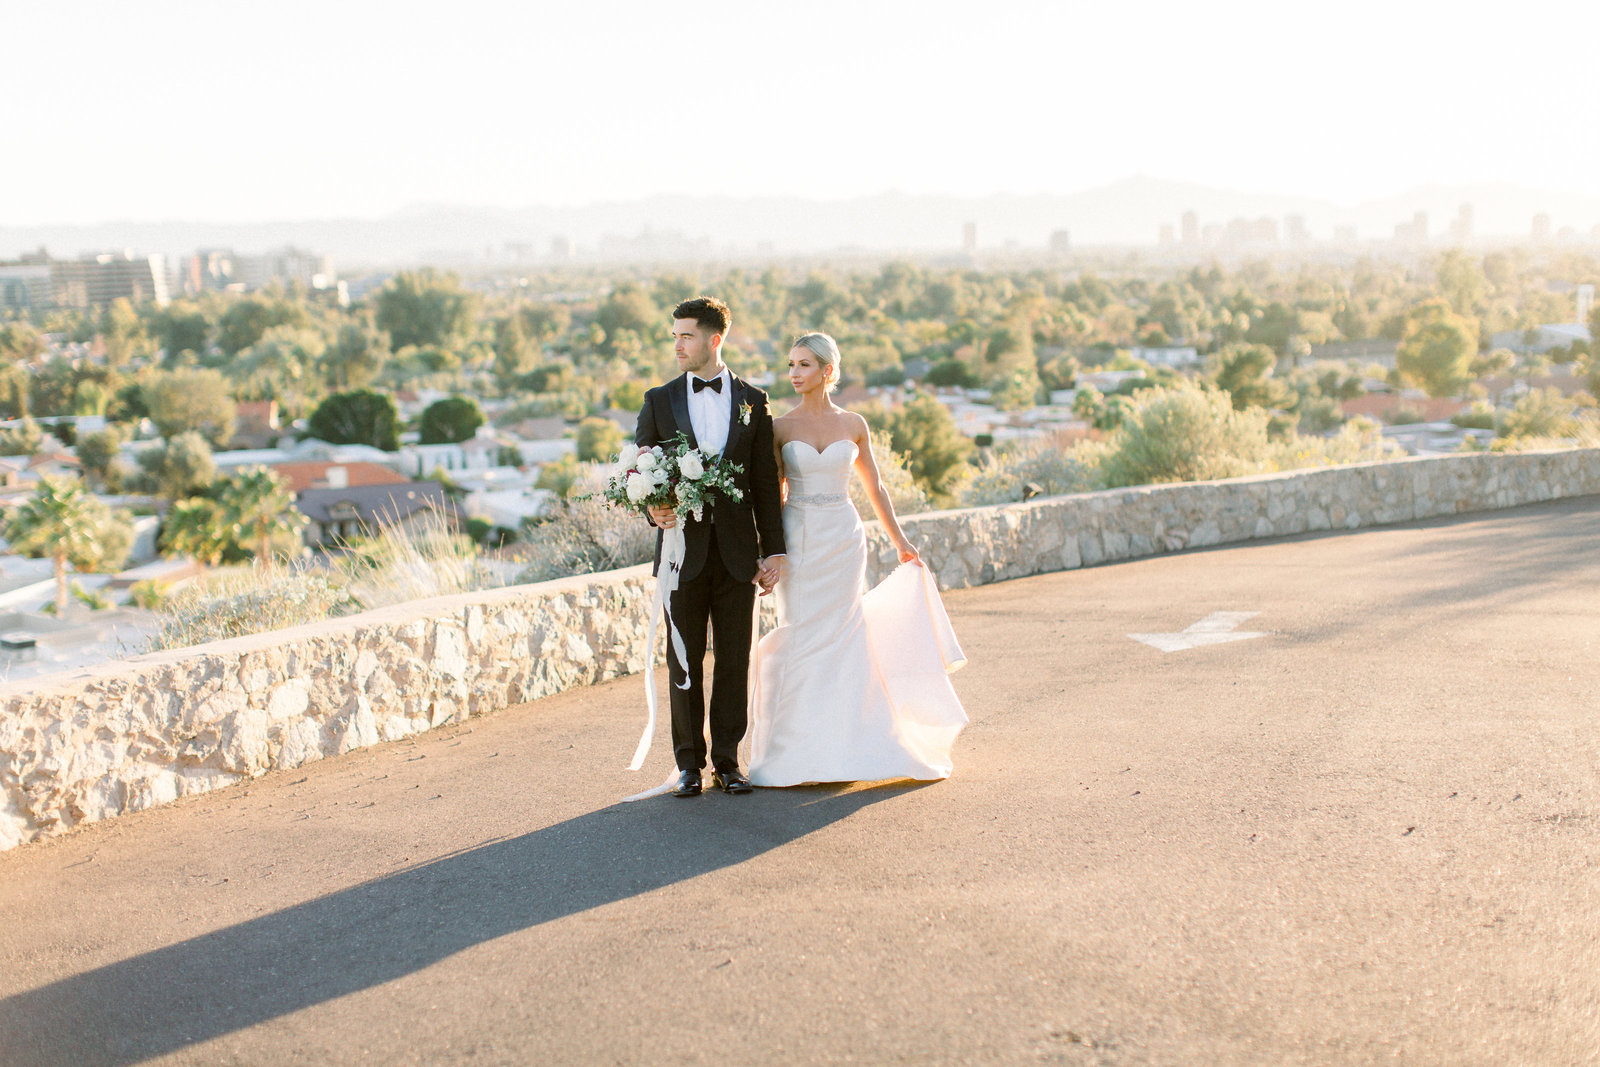 Wrigley-Mansion-Weddings-Stacey-Poterson-Photography-Phoenix-AZ-1245